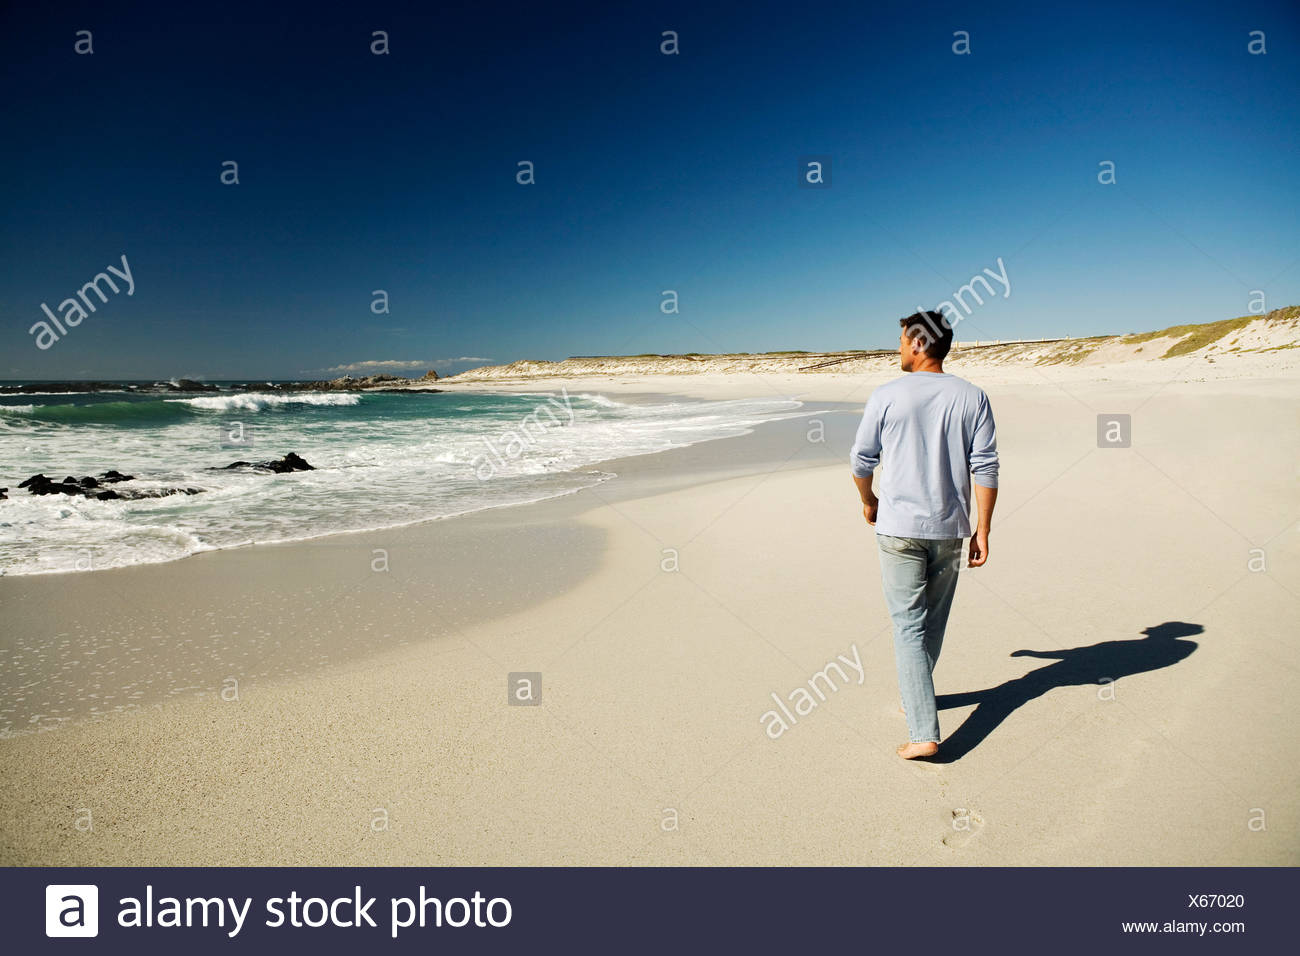 Ma walking on the beach rear view - Stock Image